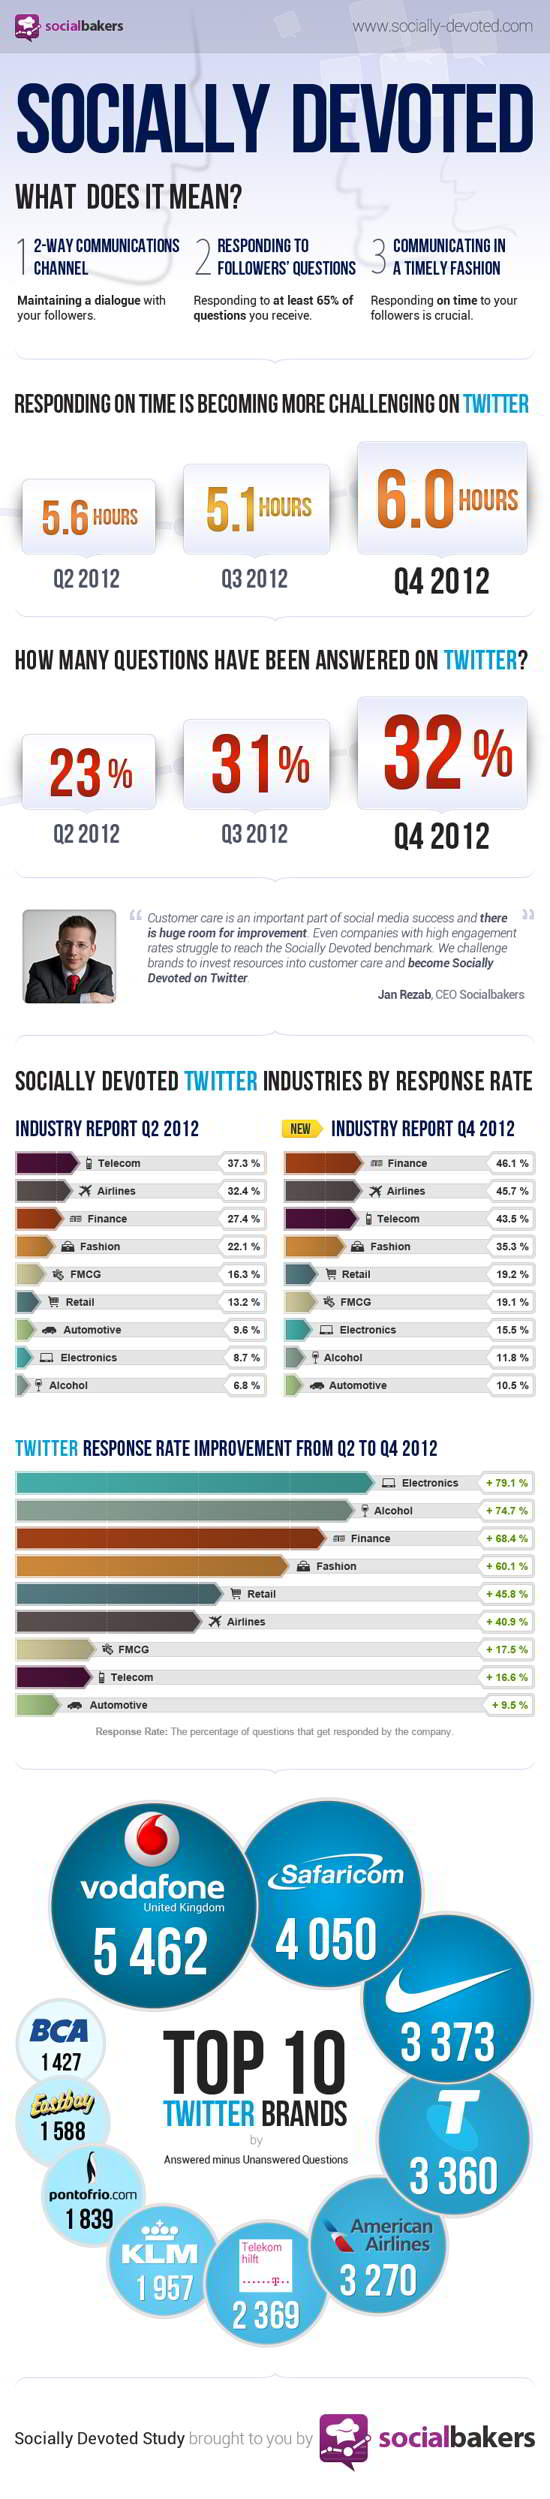 Most Socially Devoted Industries on Twitter